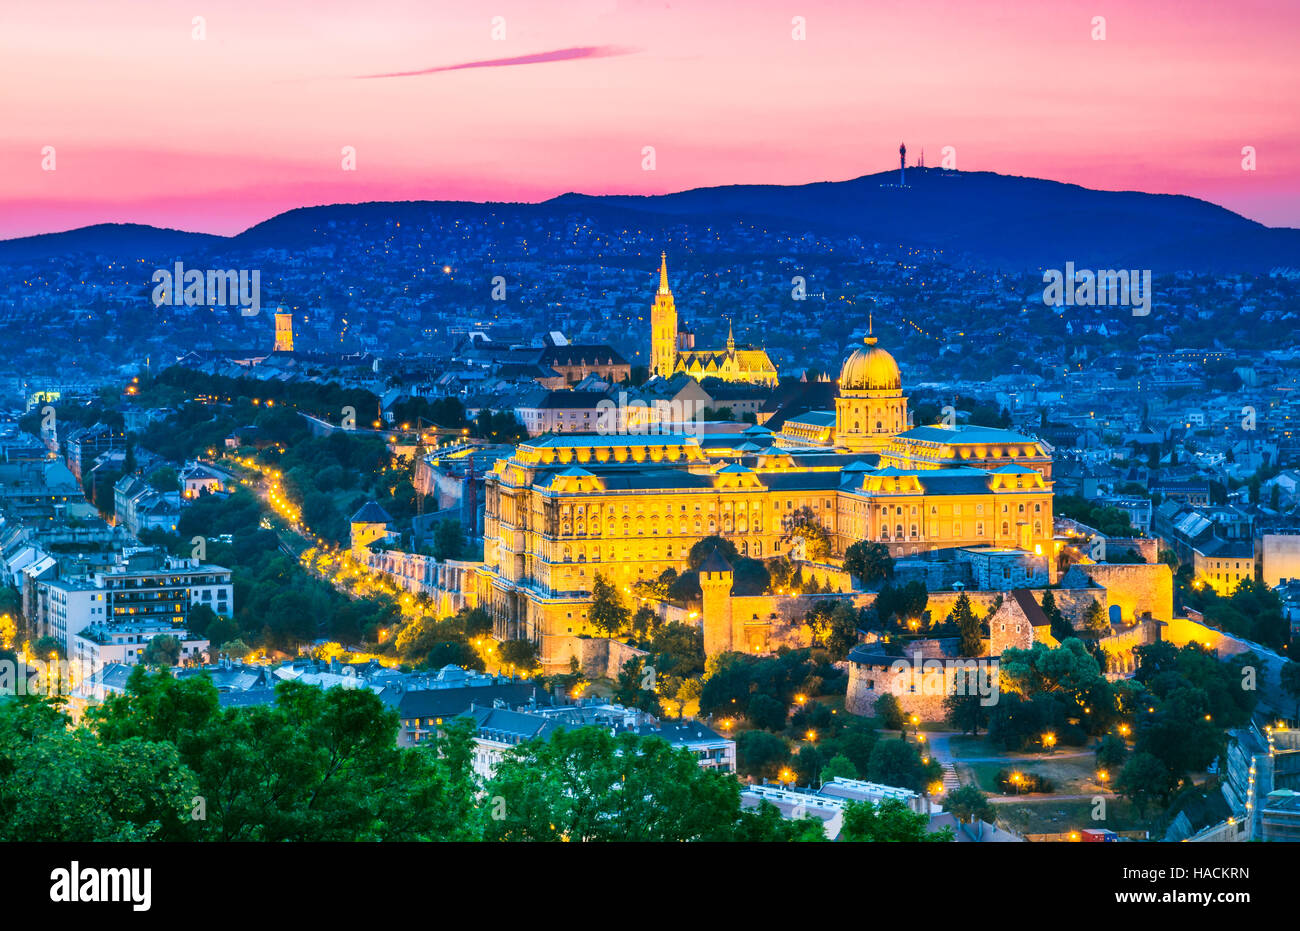 Budapest, Hungary. Buda Castle as seen from Gellert Hill in Magyar capital city. - Stock Image